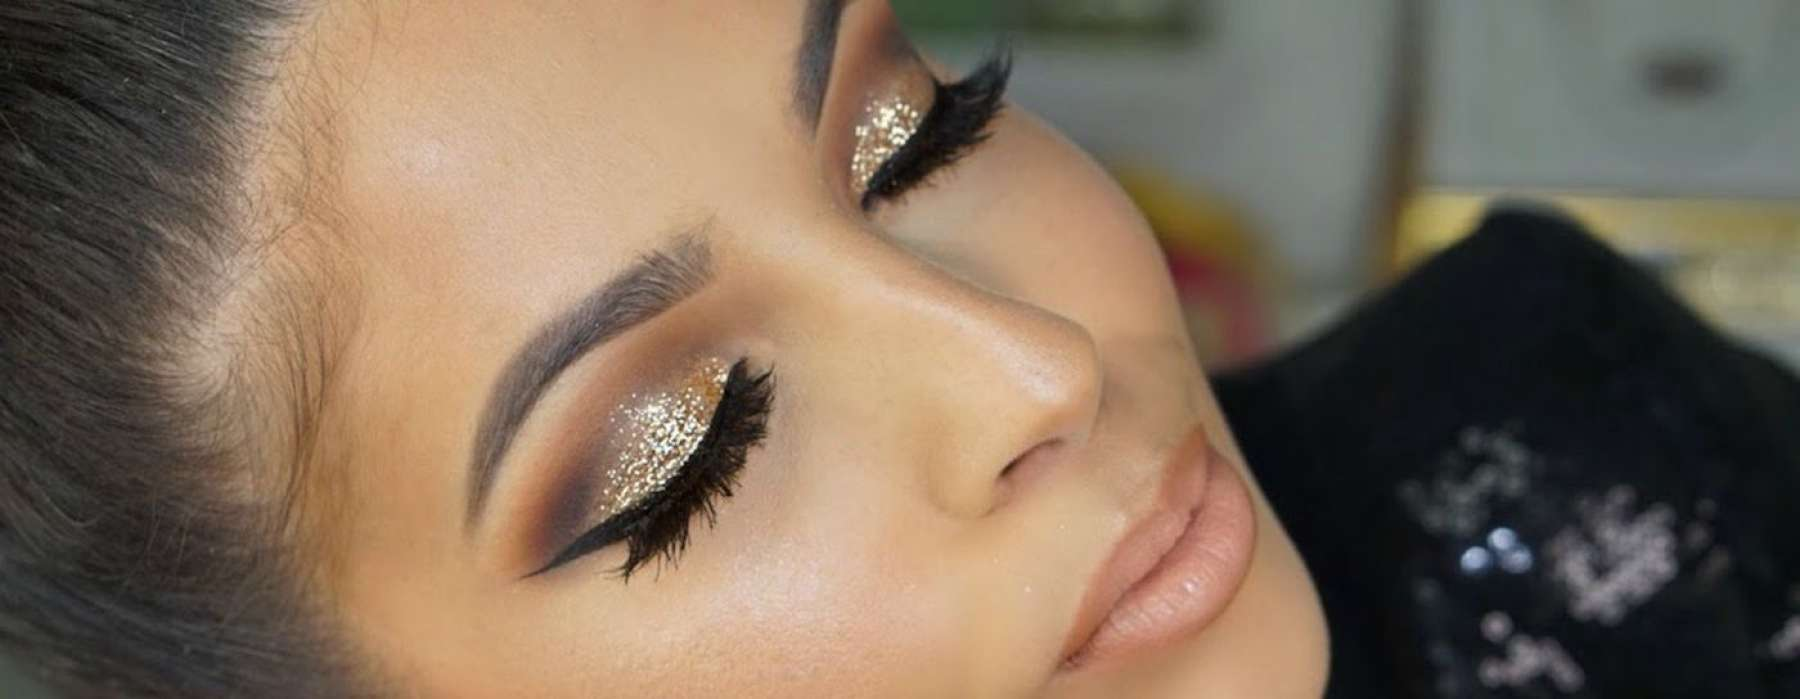 How to use makeup to bring out your own personal beauty